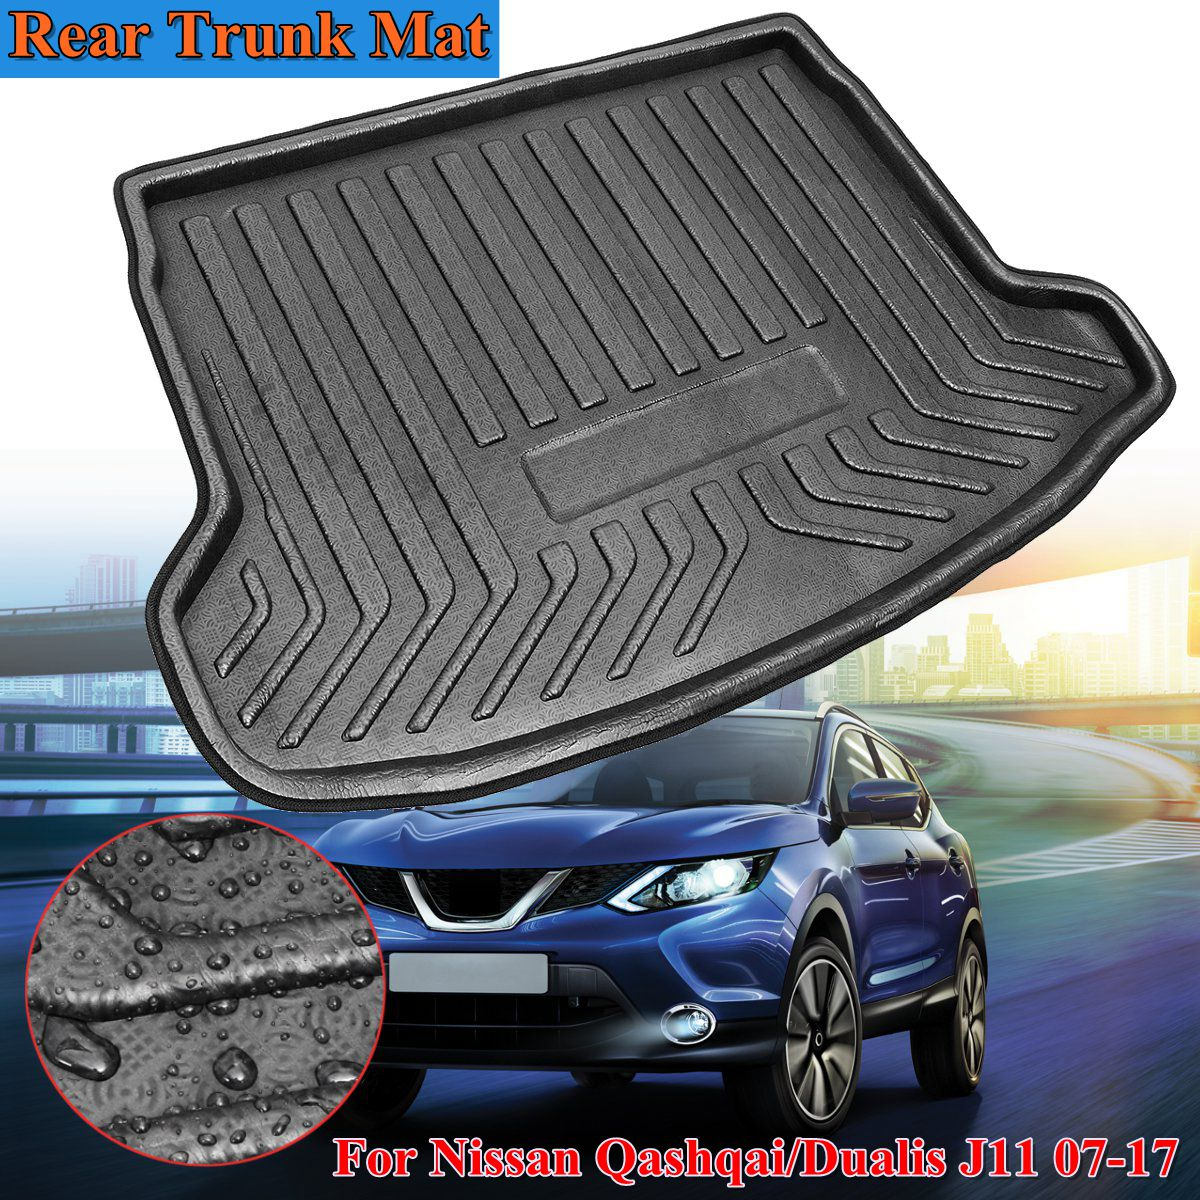 Rear Cargo Boot Liner Trunk Floor Mat Tray Carpet Mats Mud Kick For Nissan Qashqai / for Dualis J11 2007 2008 2009 2010 11 2018